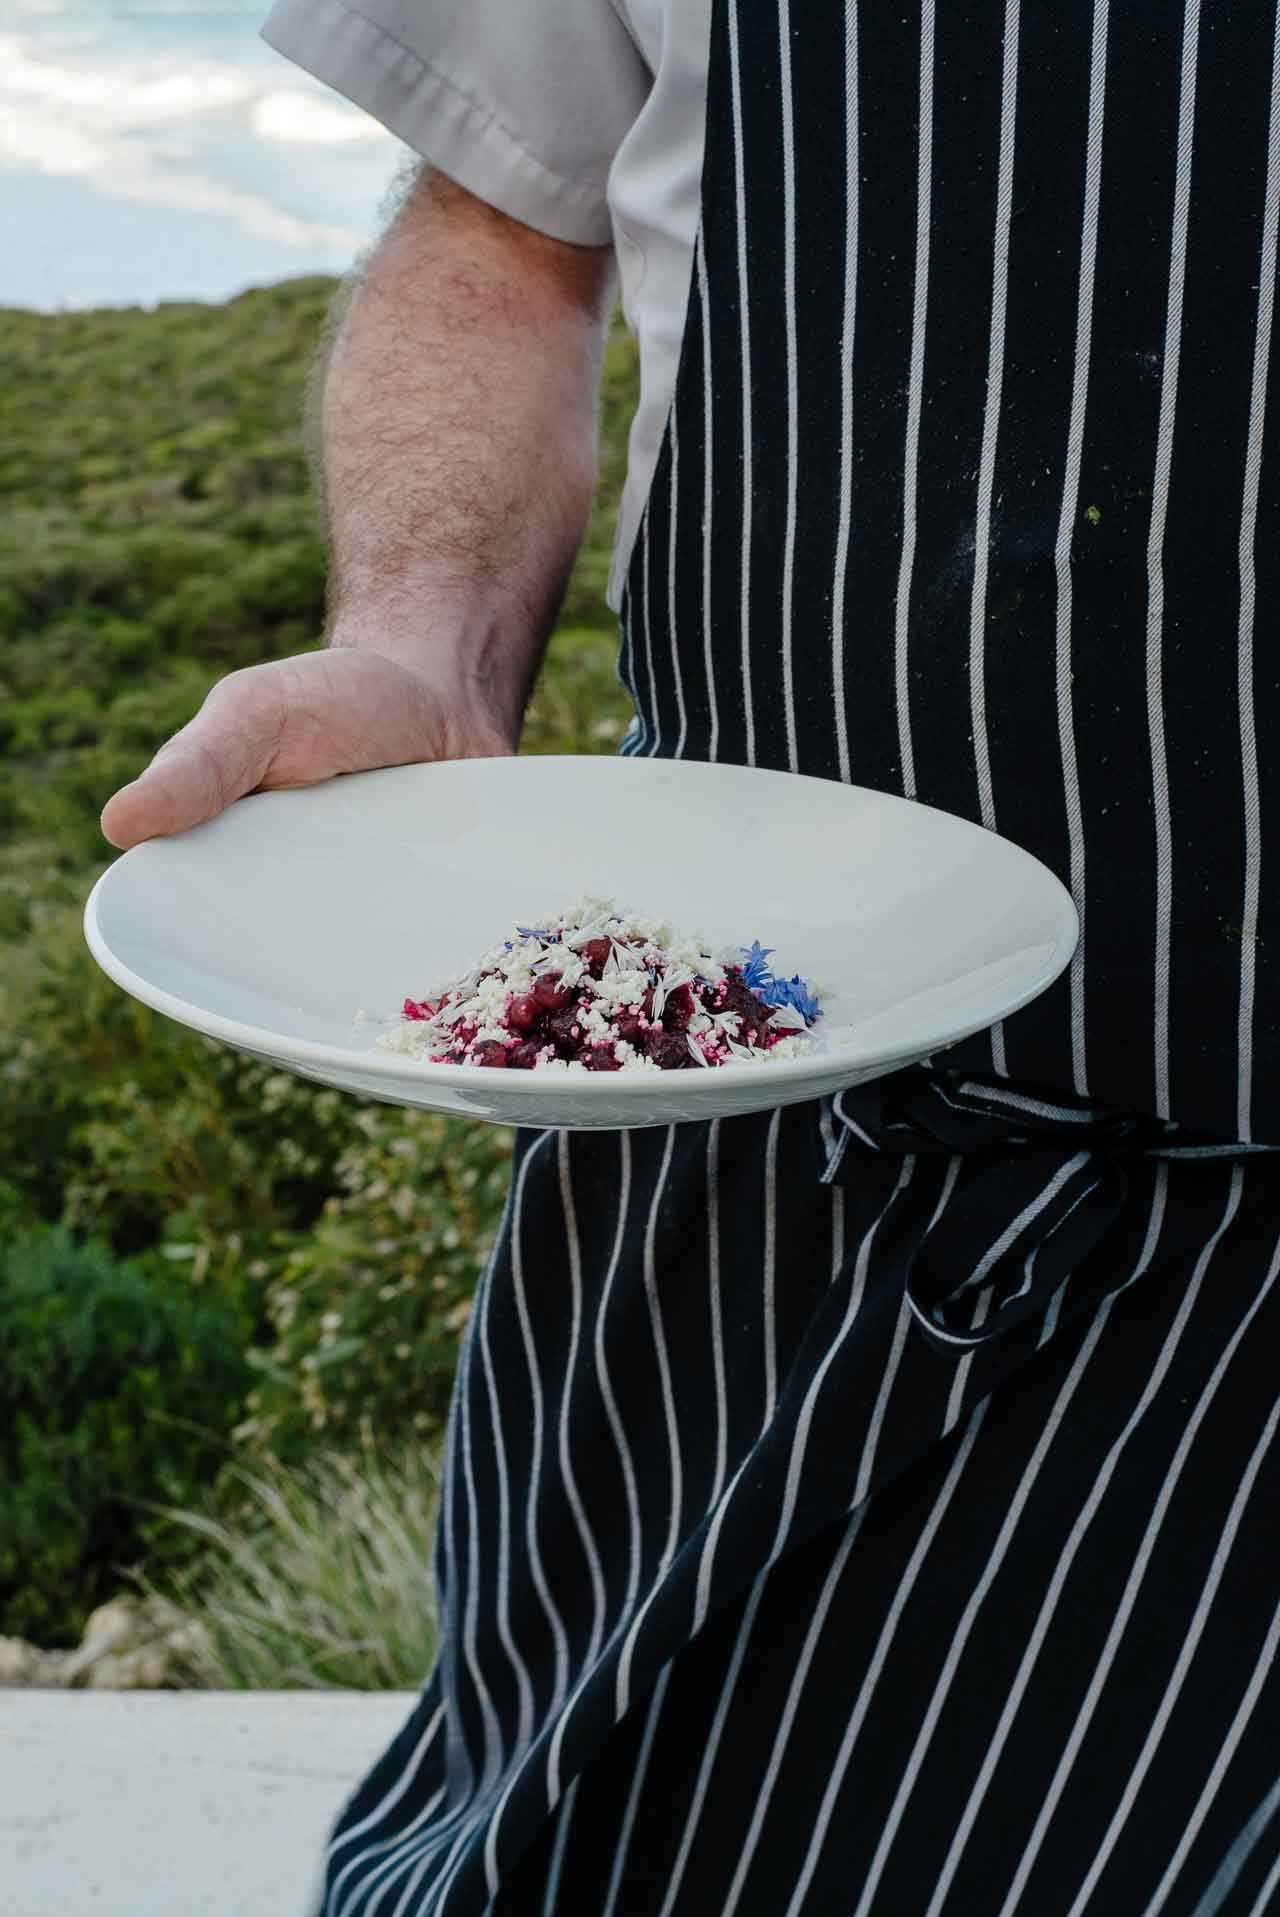 Beetroot and cheese salad at Southern Ocean Lodge